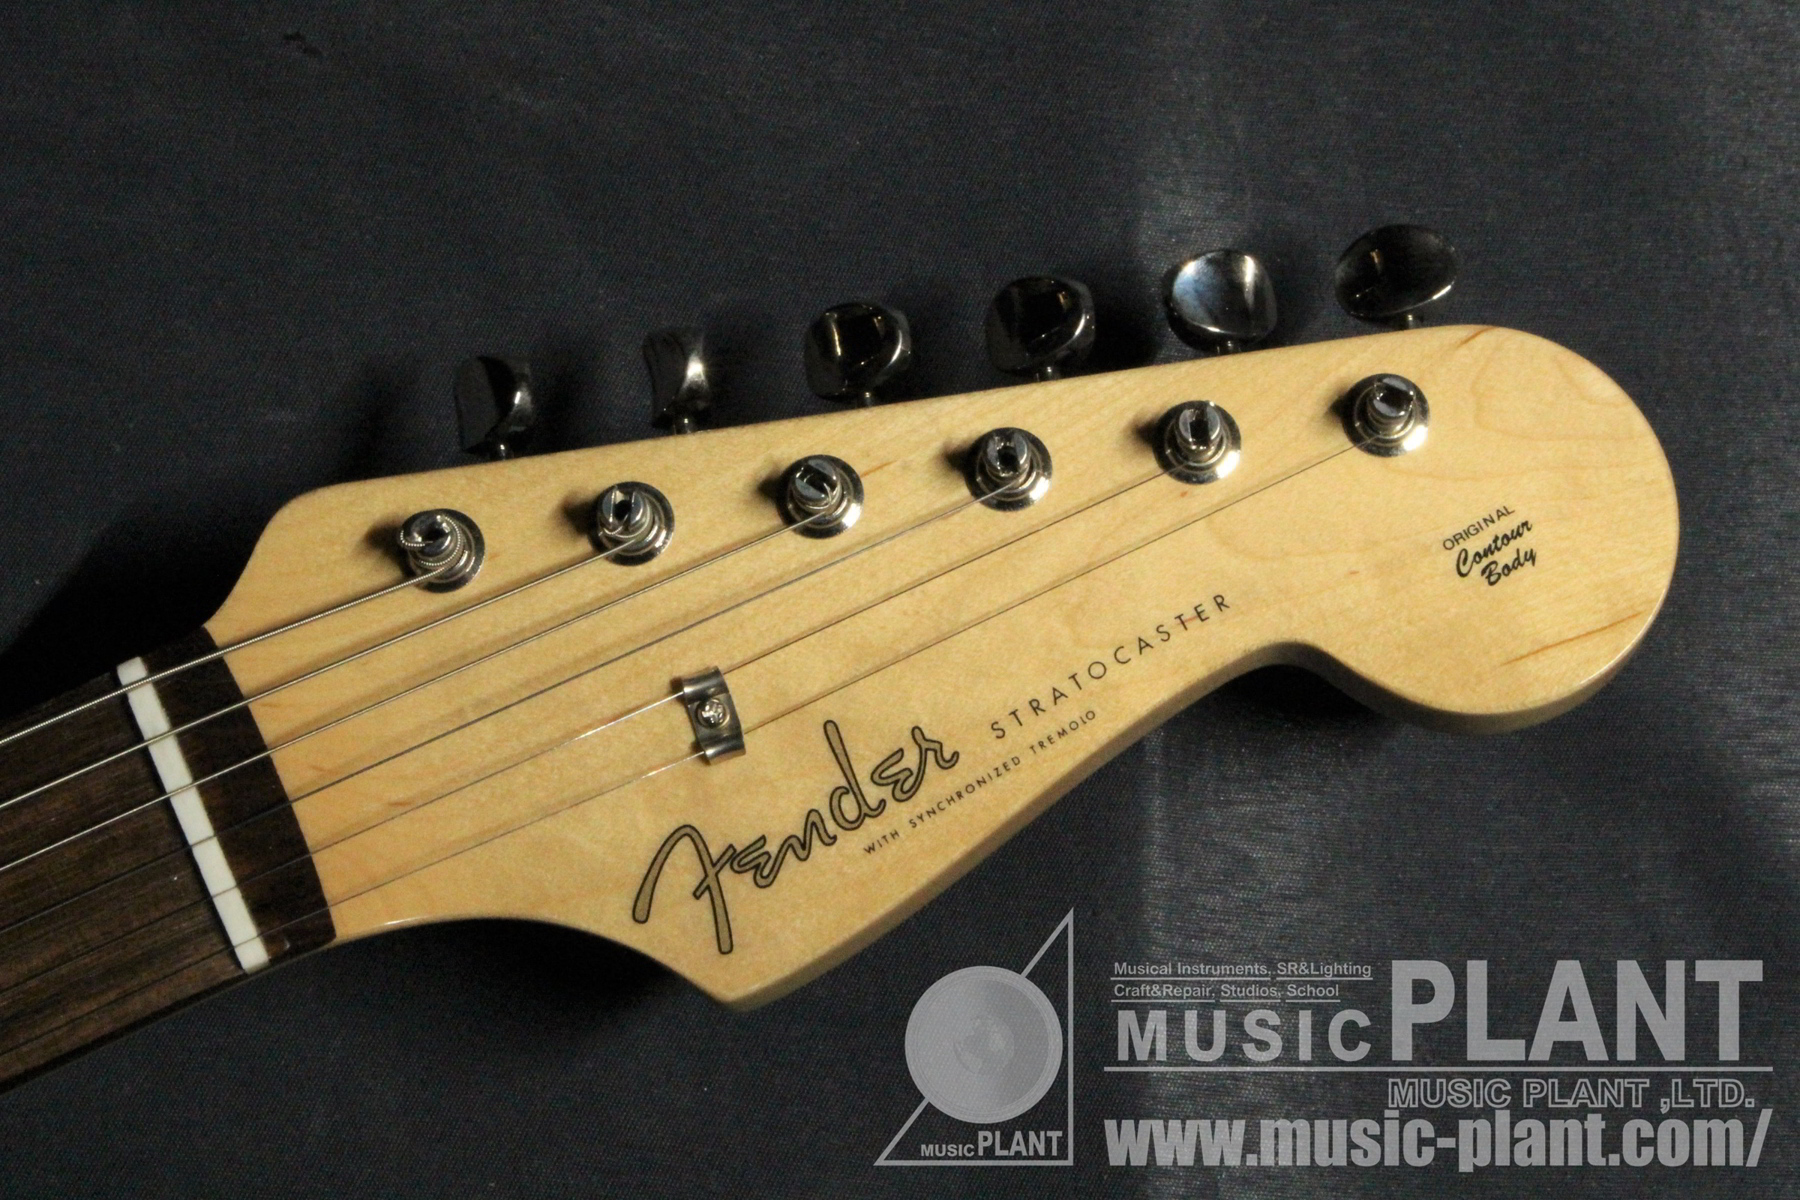 MADE IN JAPAN TRADITIONAL 60S STRATOCASTER Shell Pinkヘッド画像